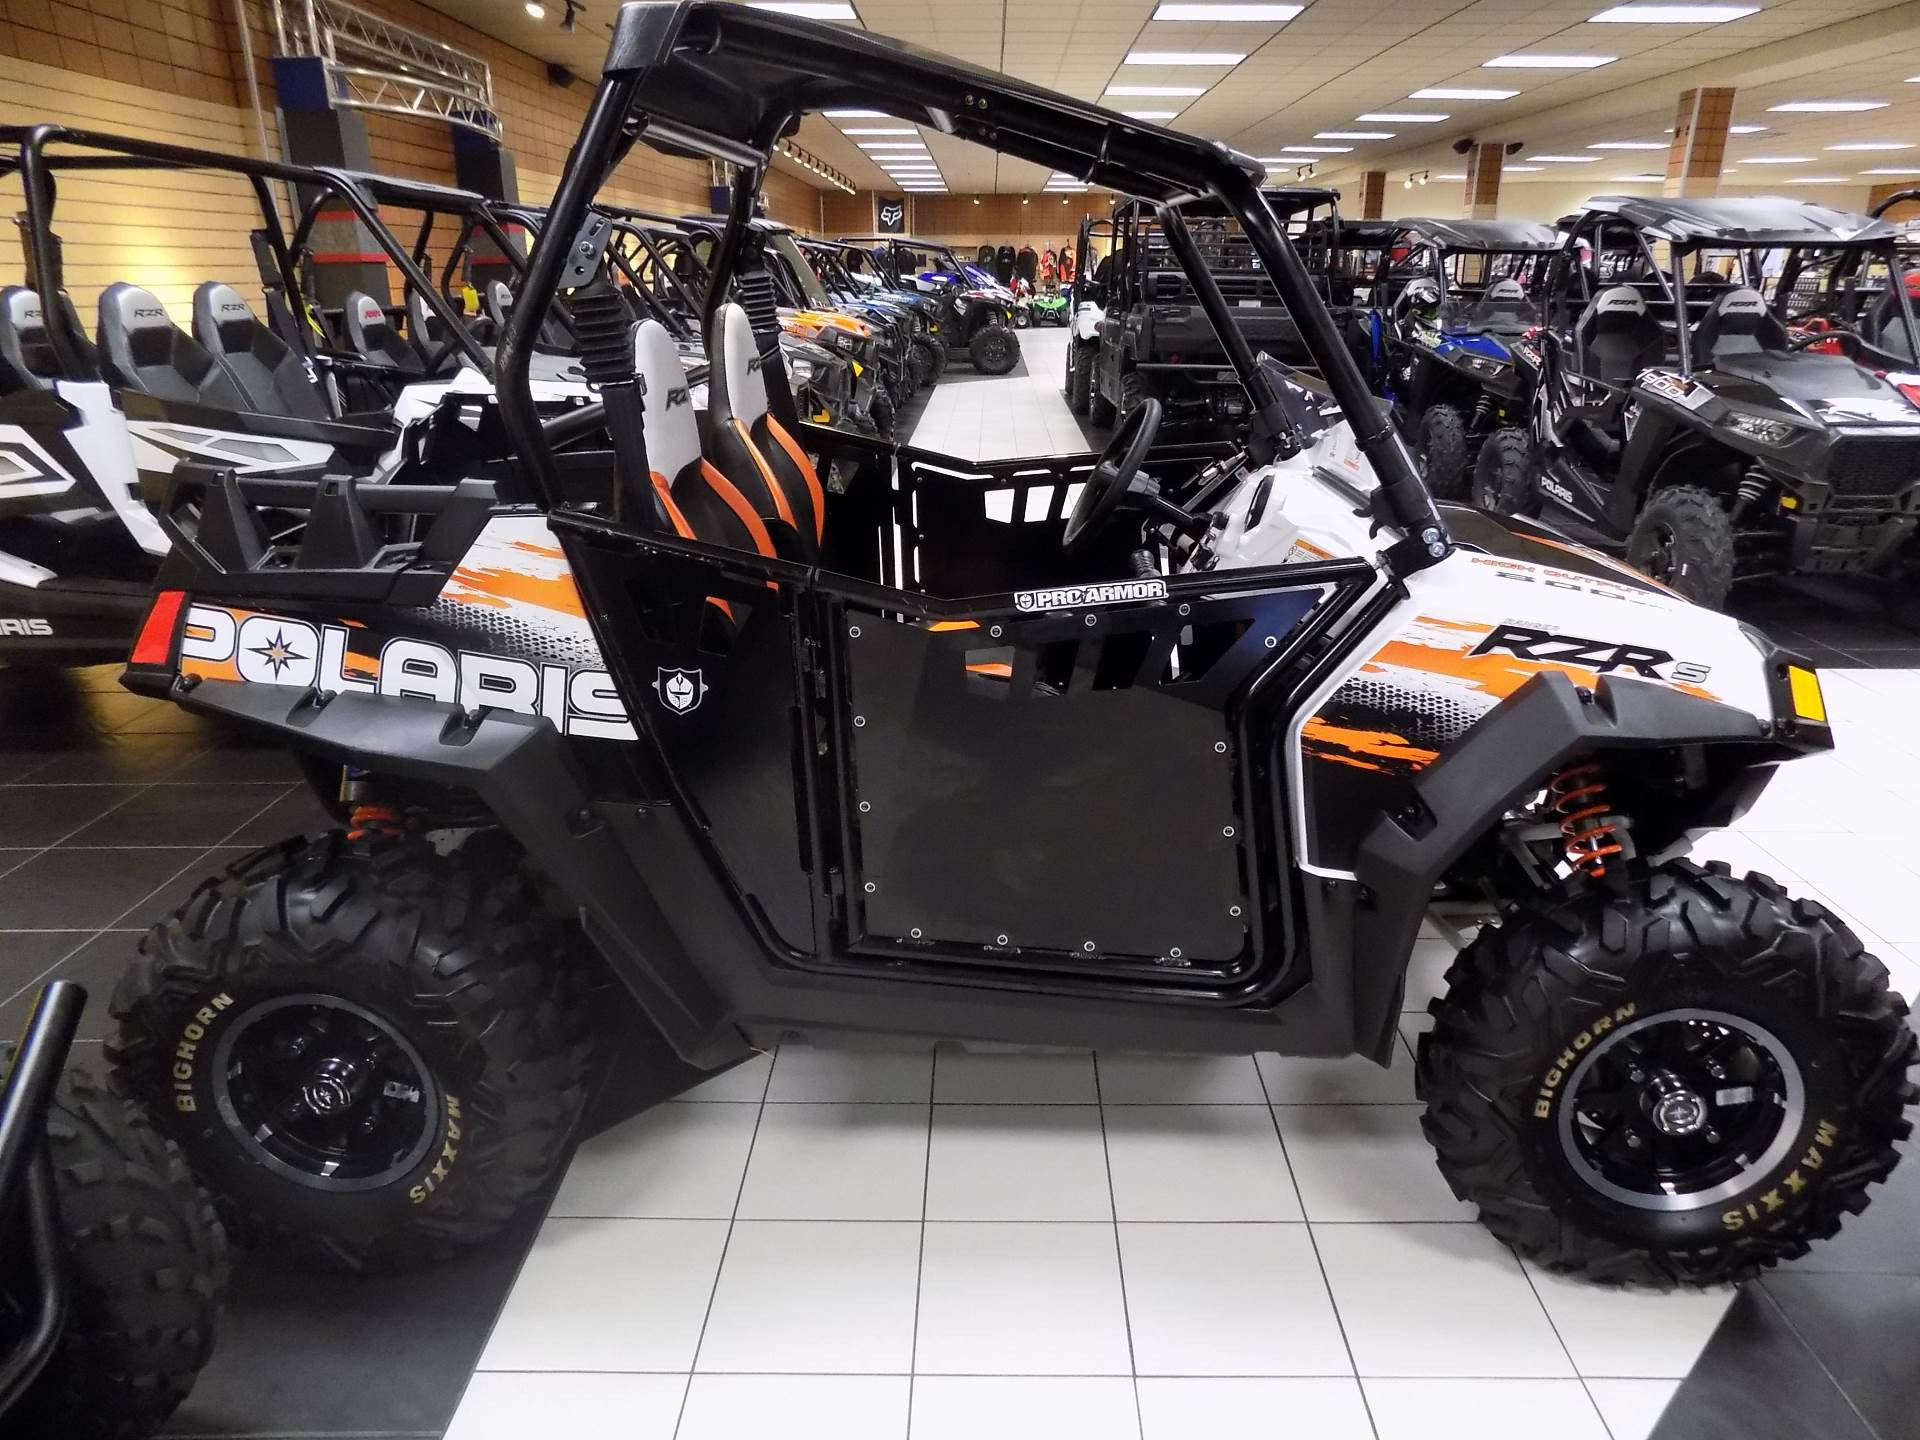 2012 polaris ranger rzr s 800 le for sale chanute ks 592419. Black Bedroom Furniture Sets. Home Design Ideas